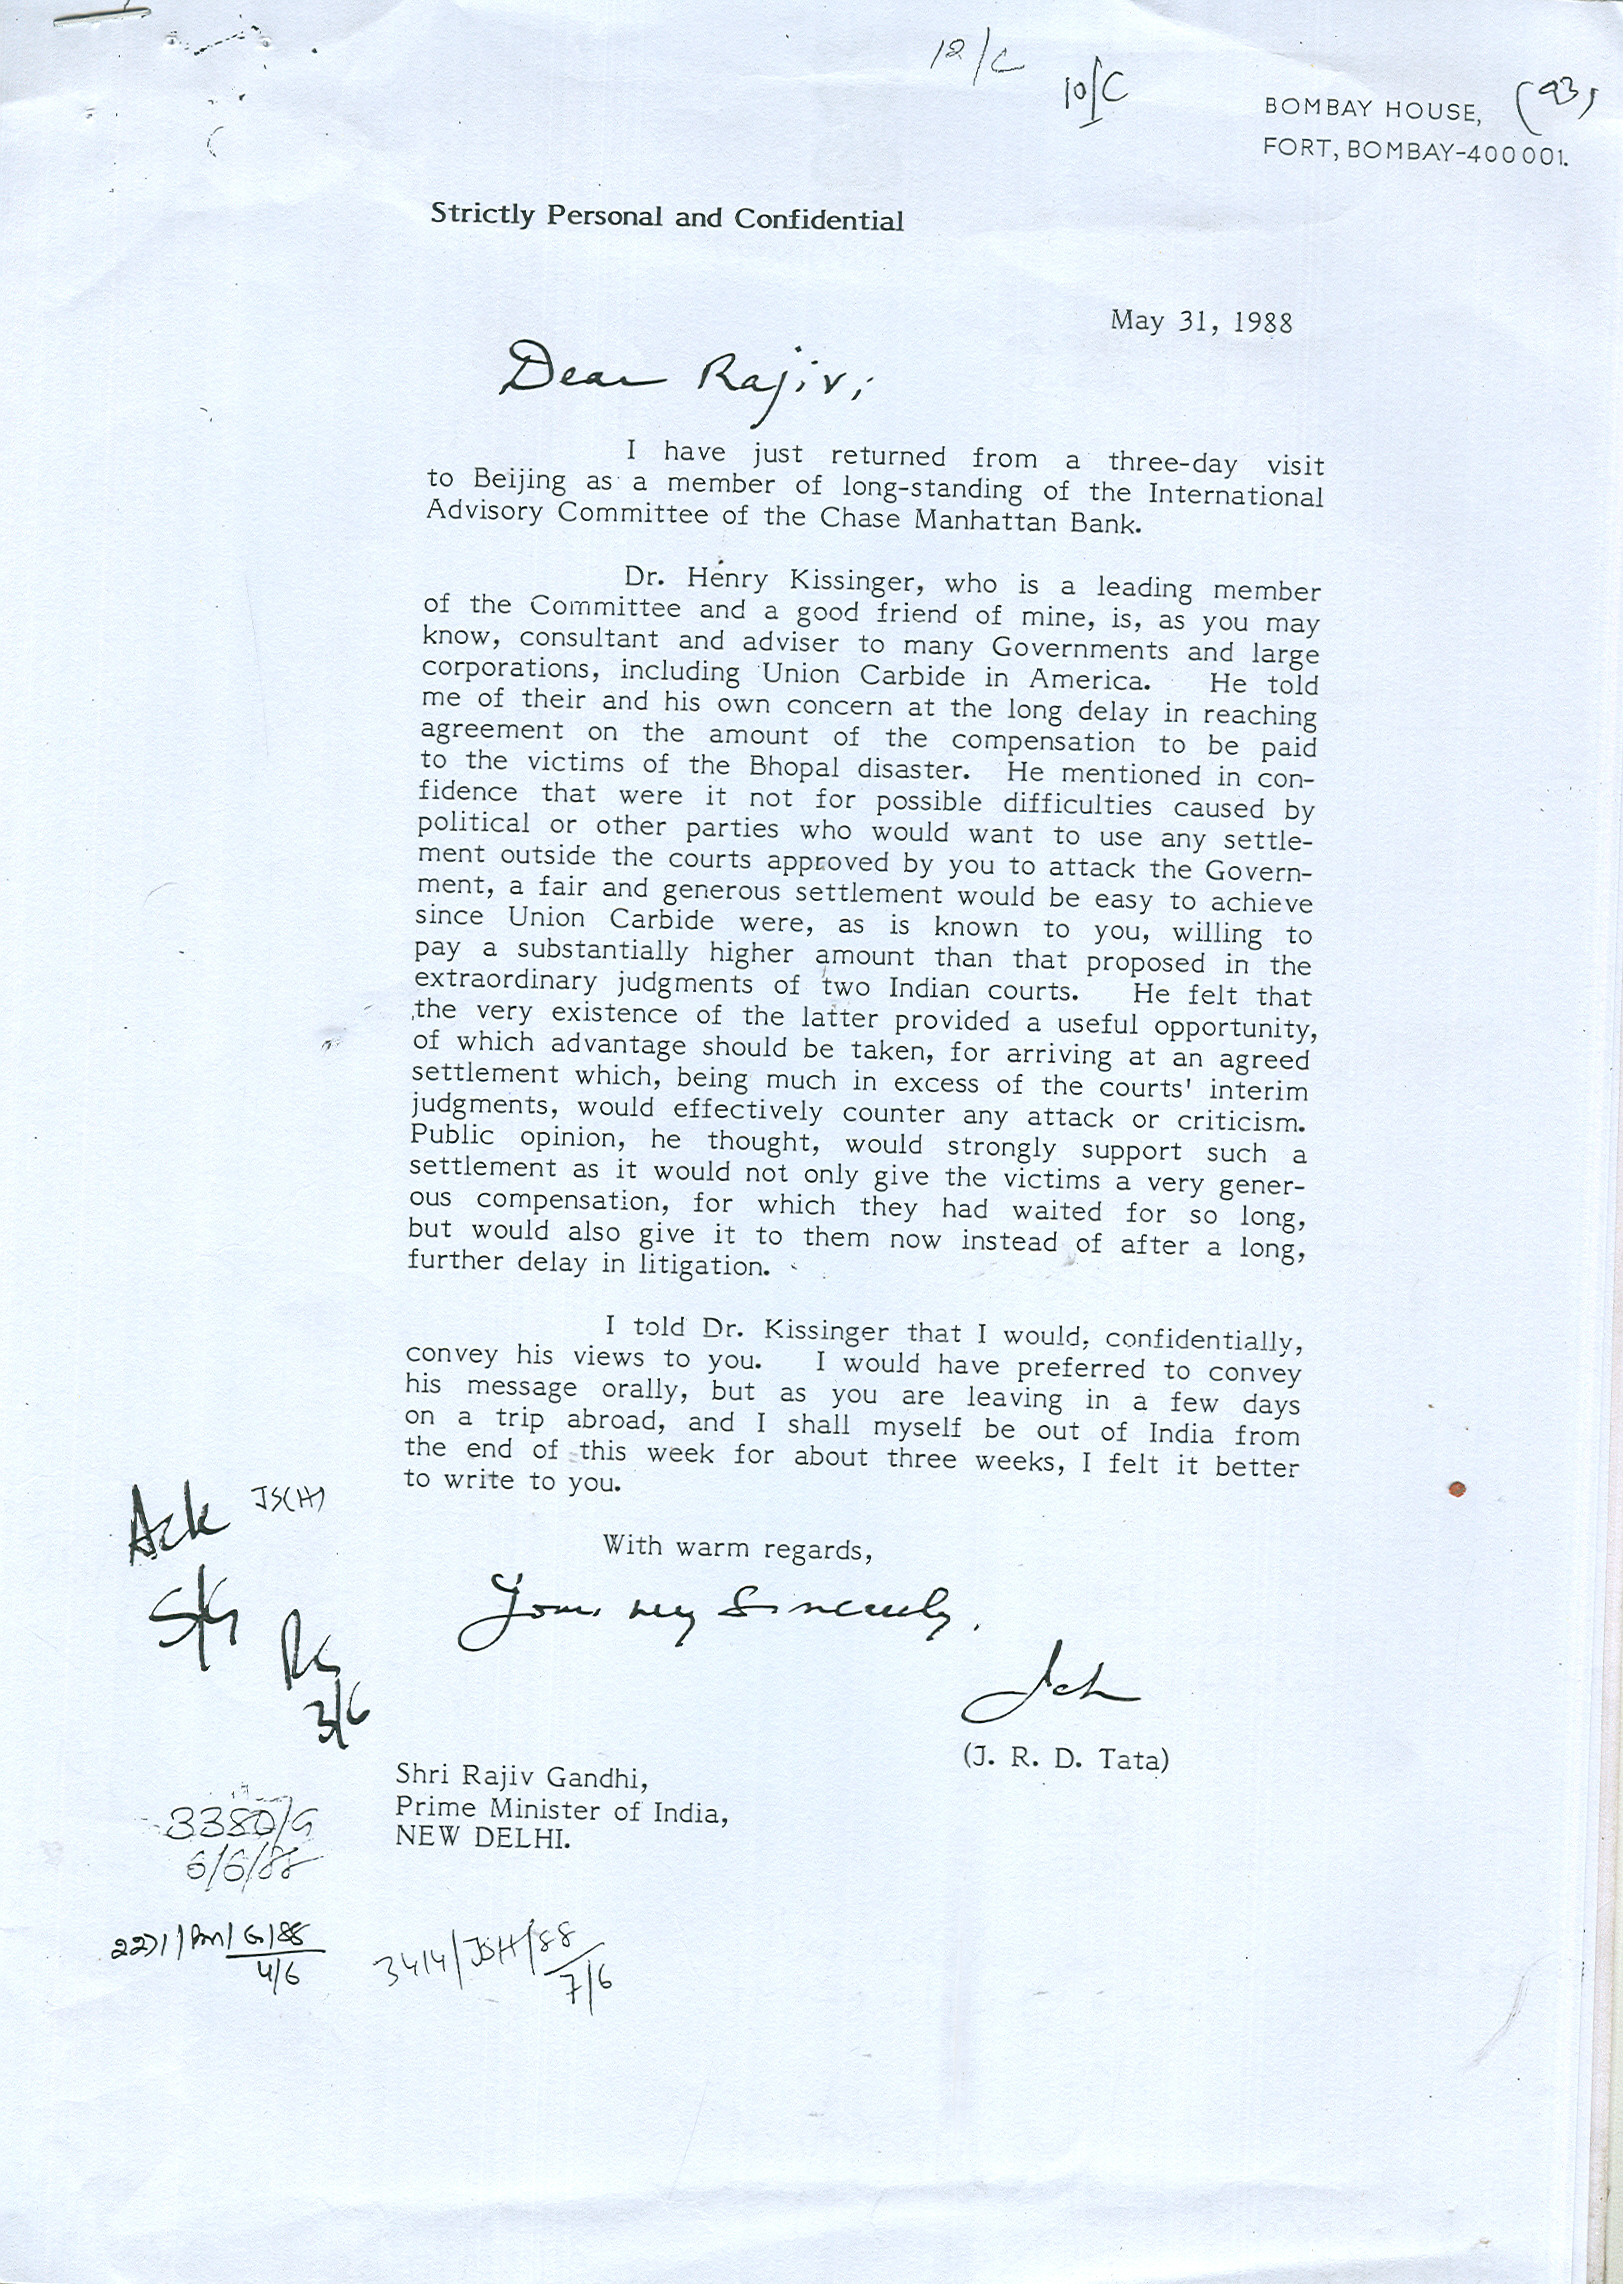 Kissingers msg to Rajiv Gandhi May 31, 1988